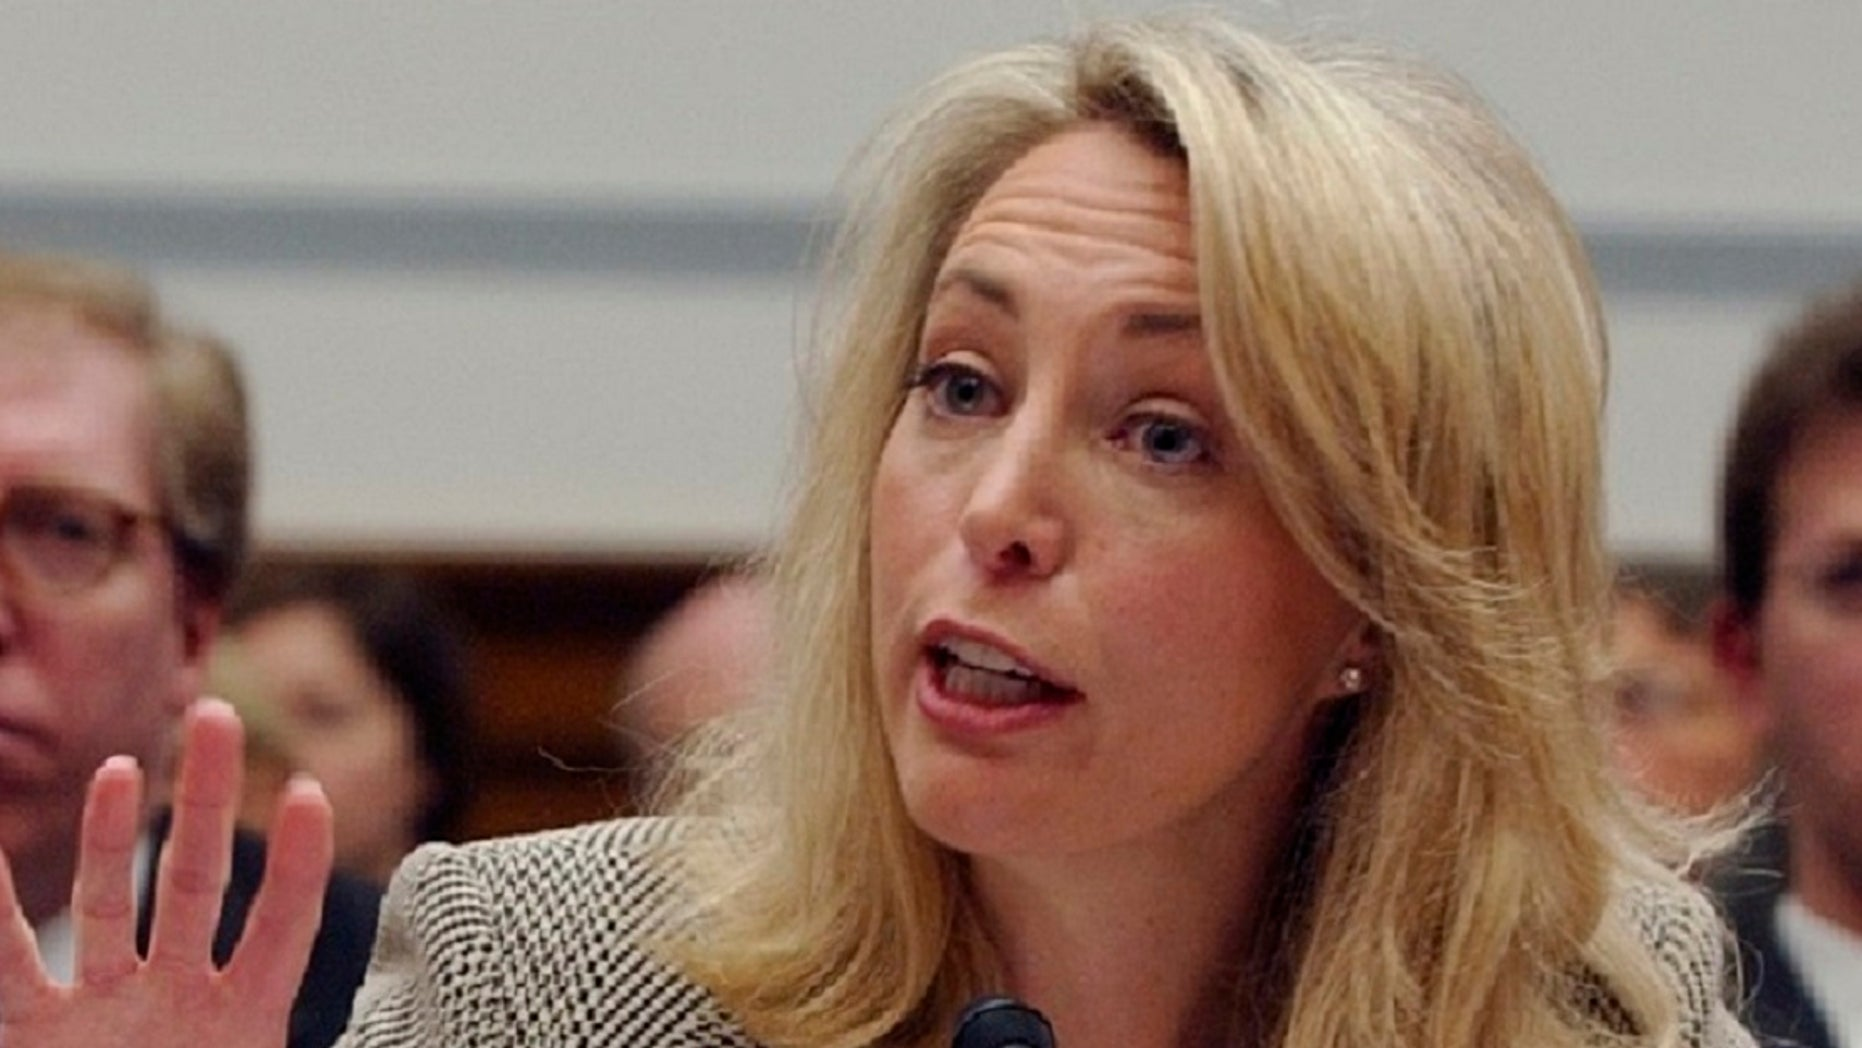 Former CIA operative Valerie Plame gestures while testifying on Capitol Hill, in an undated photo. (Associated Press)